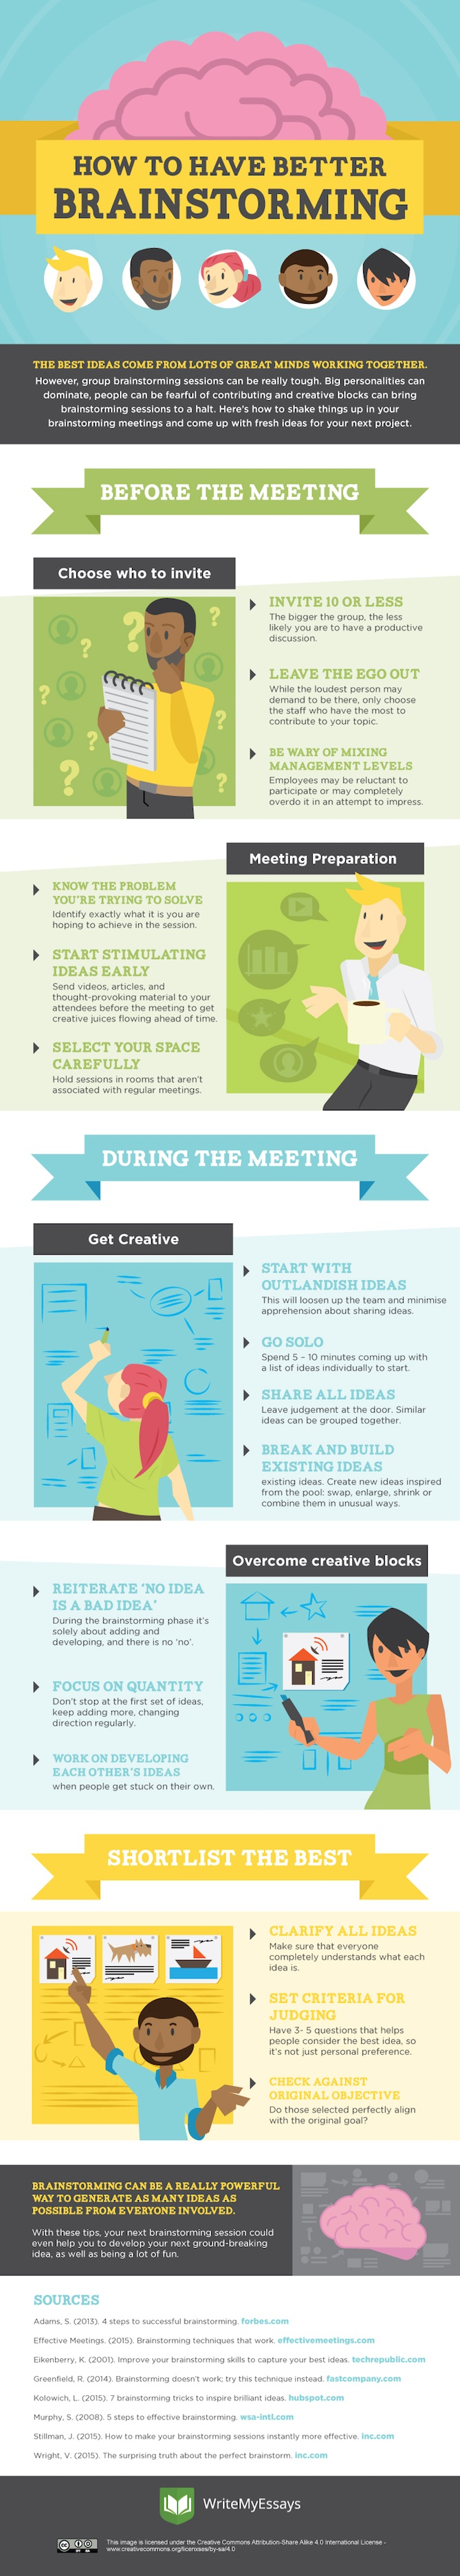 better-brainstorms-infographic.jpg